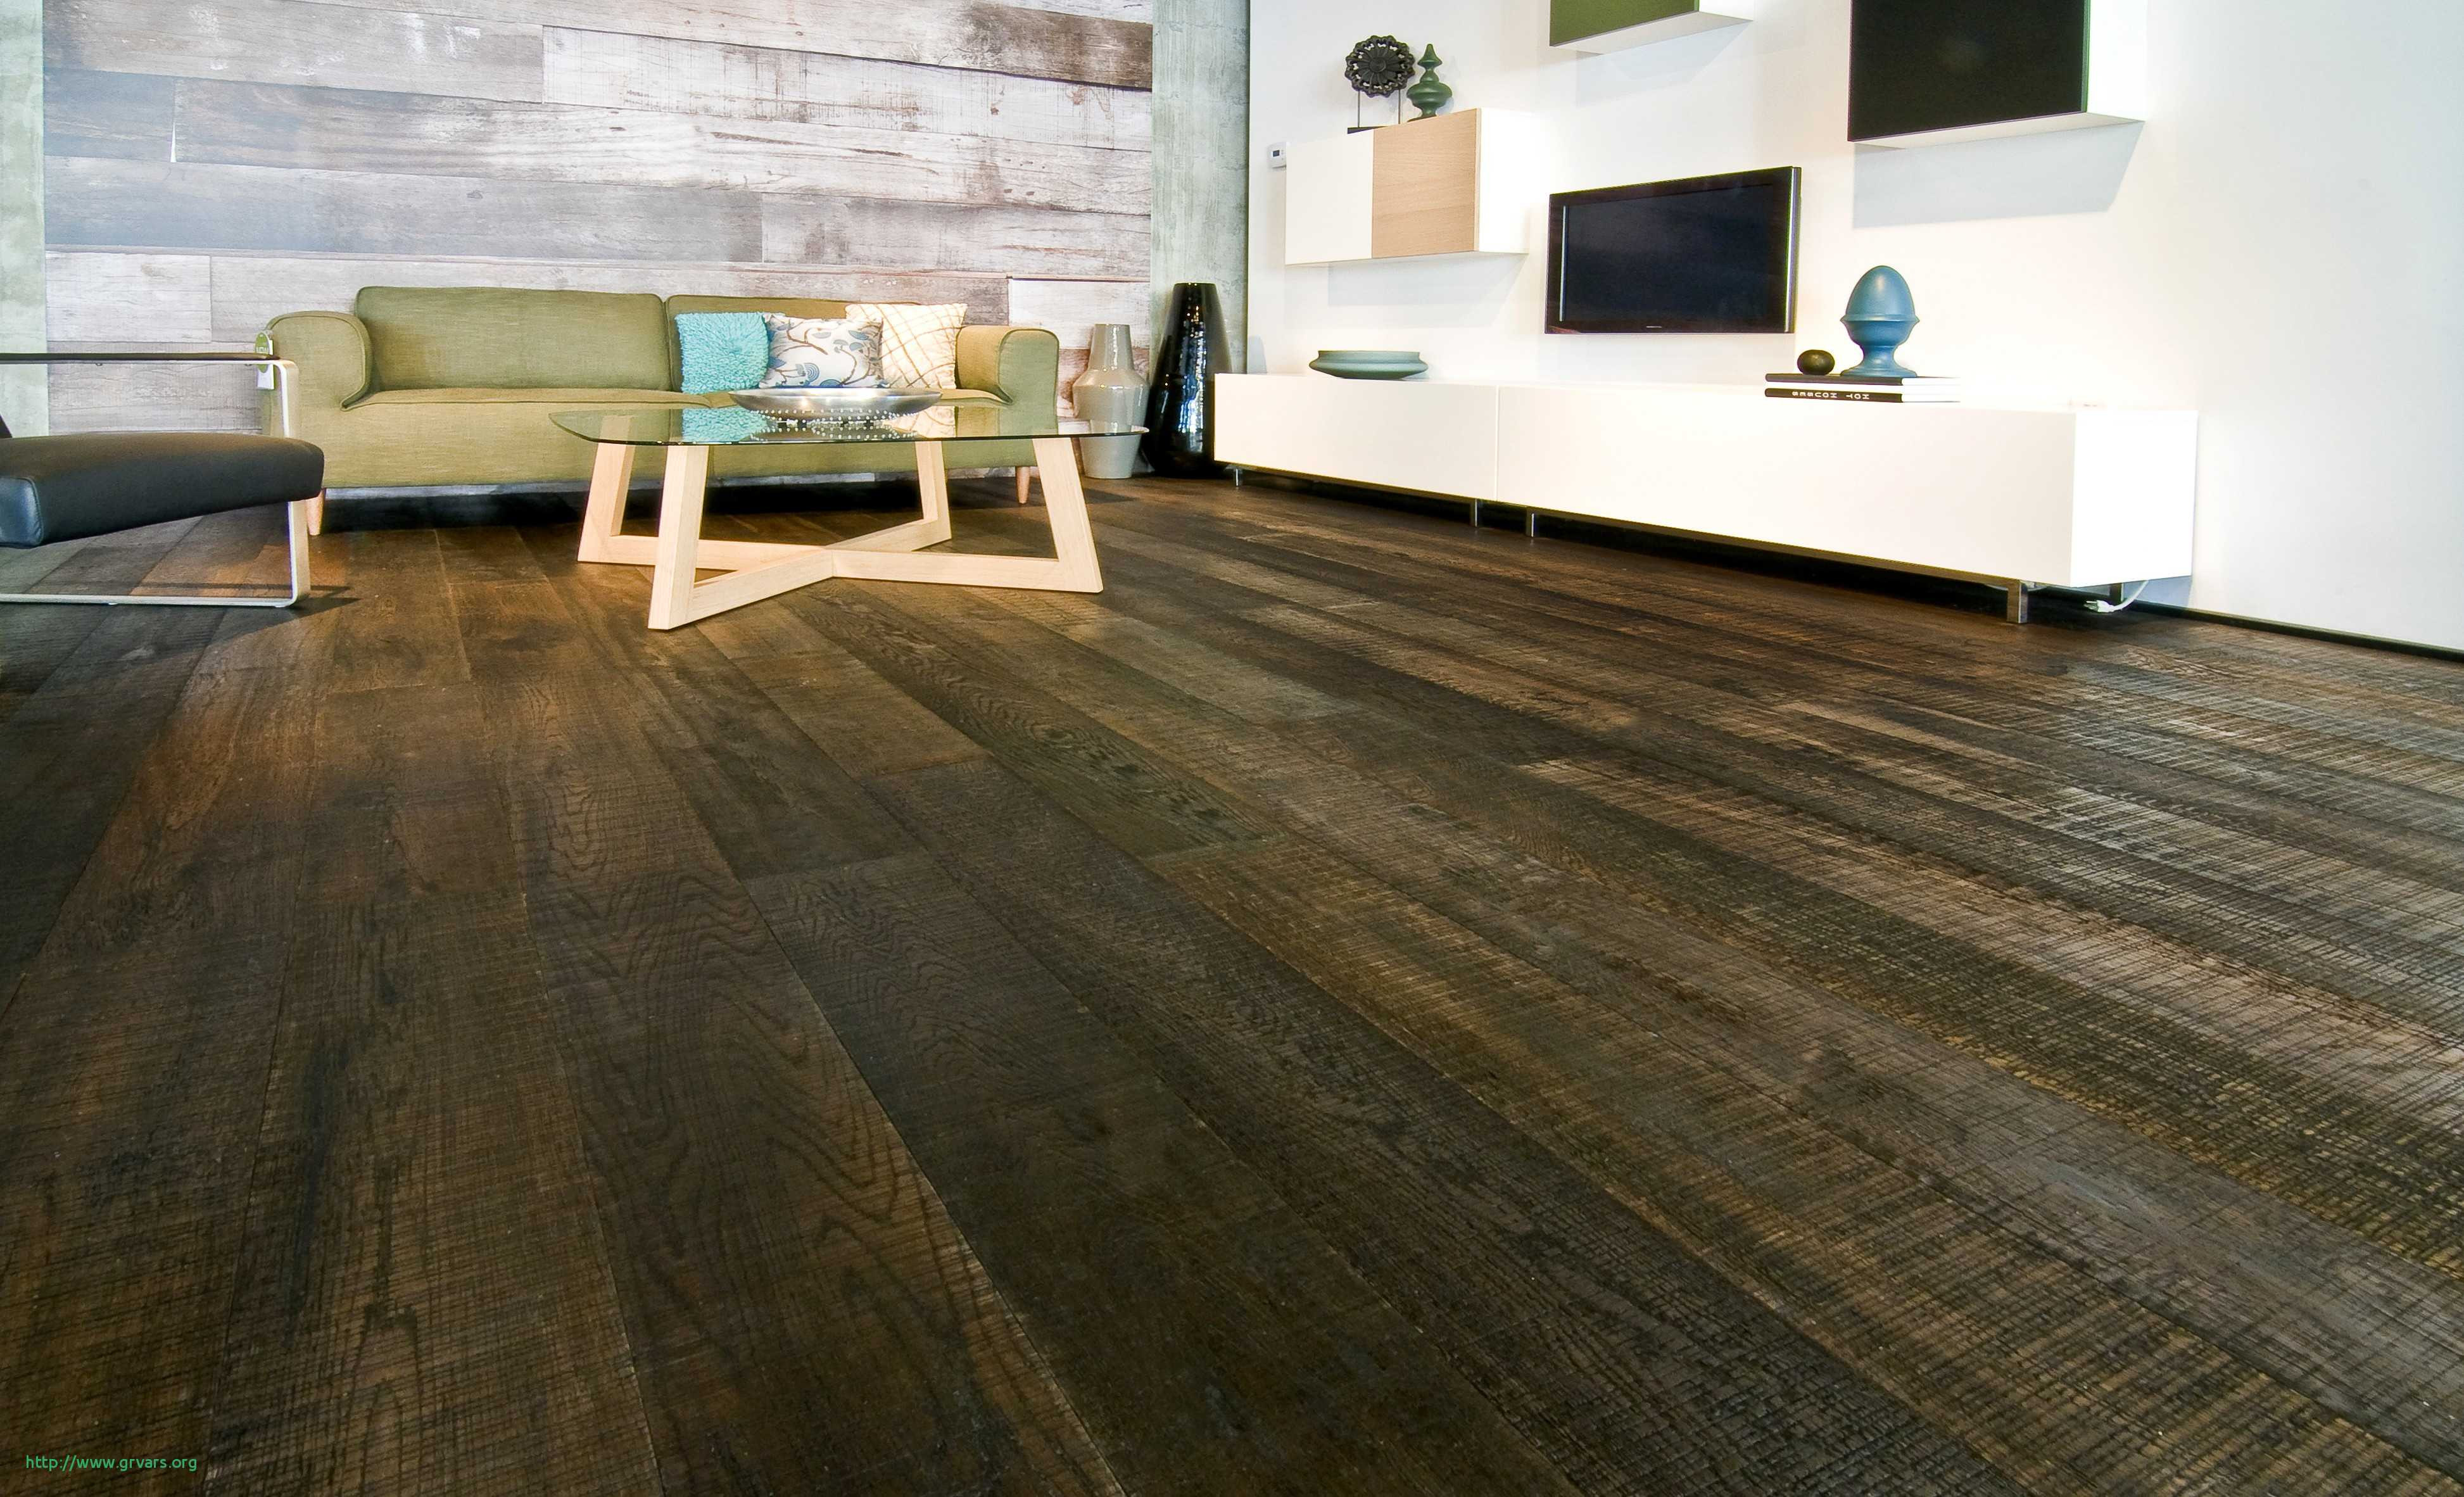 Amazon Hardwood Flooring Markham Of 21 Beau Cheapest Hardwood Flooring In toronto Ideas Blog In Cheapest Hardwood Flooring In toronto Charmant Engaging Discount Hardwood Flooring 5 where to Buy Inspirational 0d